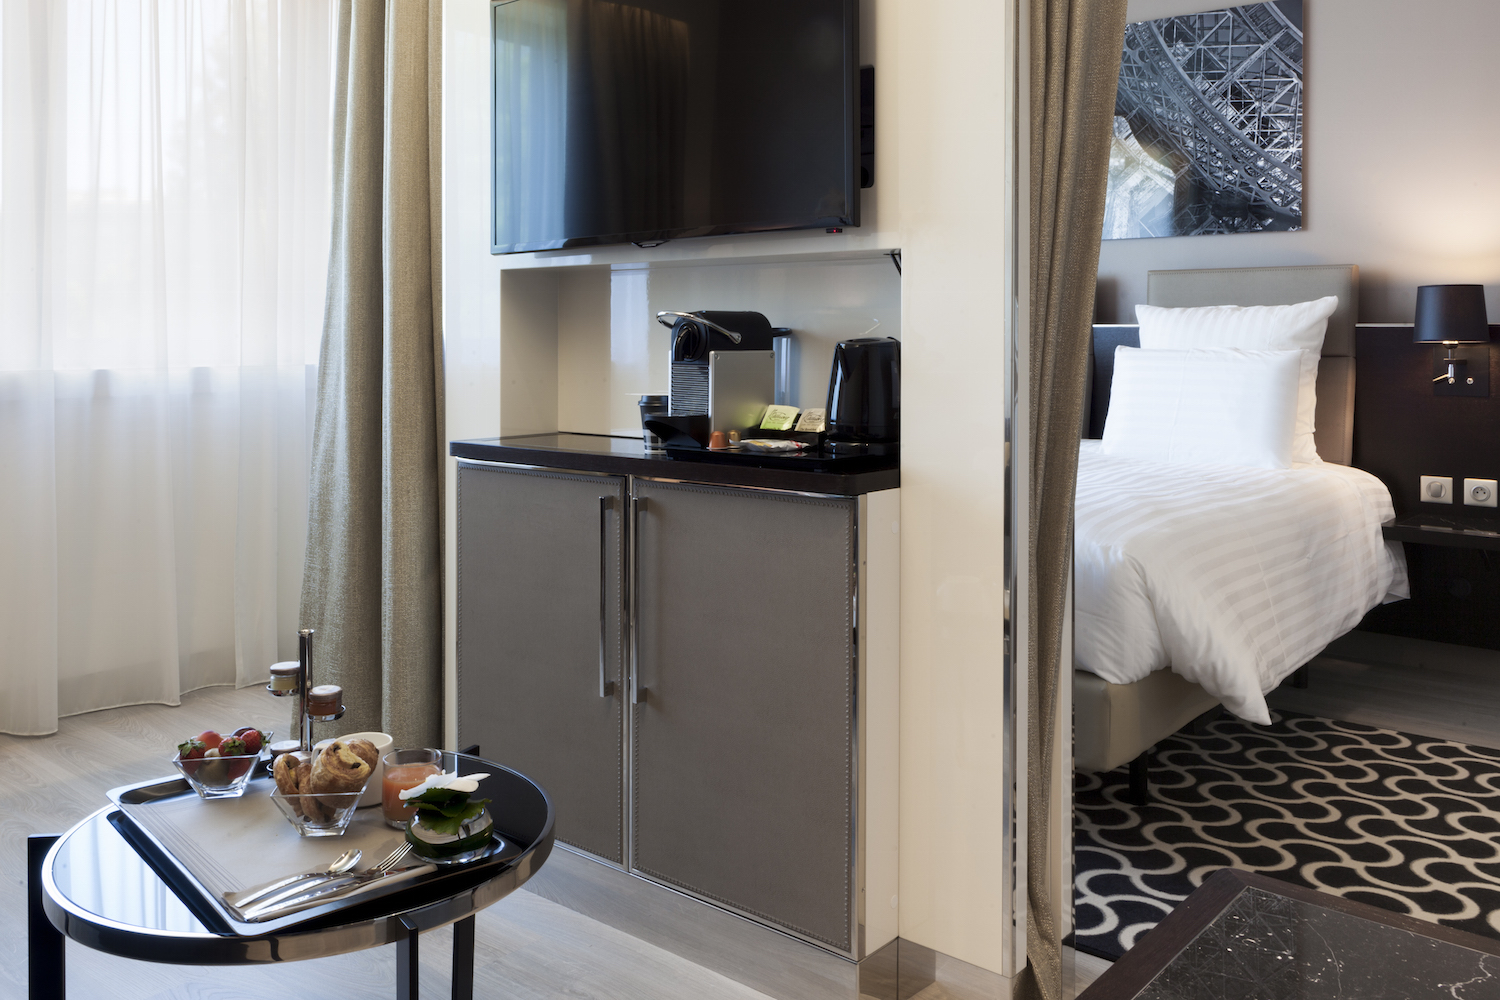 Ac hotel paris porte maillot by marriott sur h tel paris for Hotel paris porte maillot